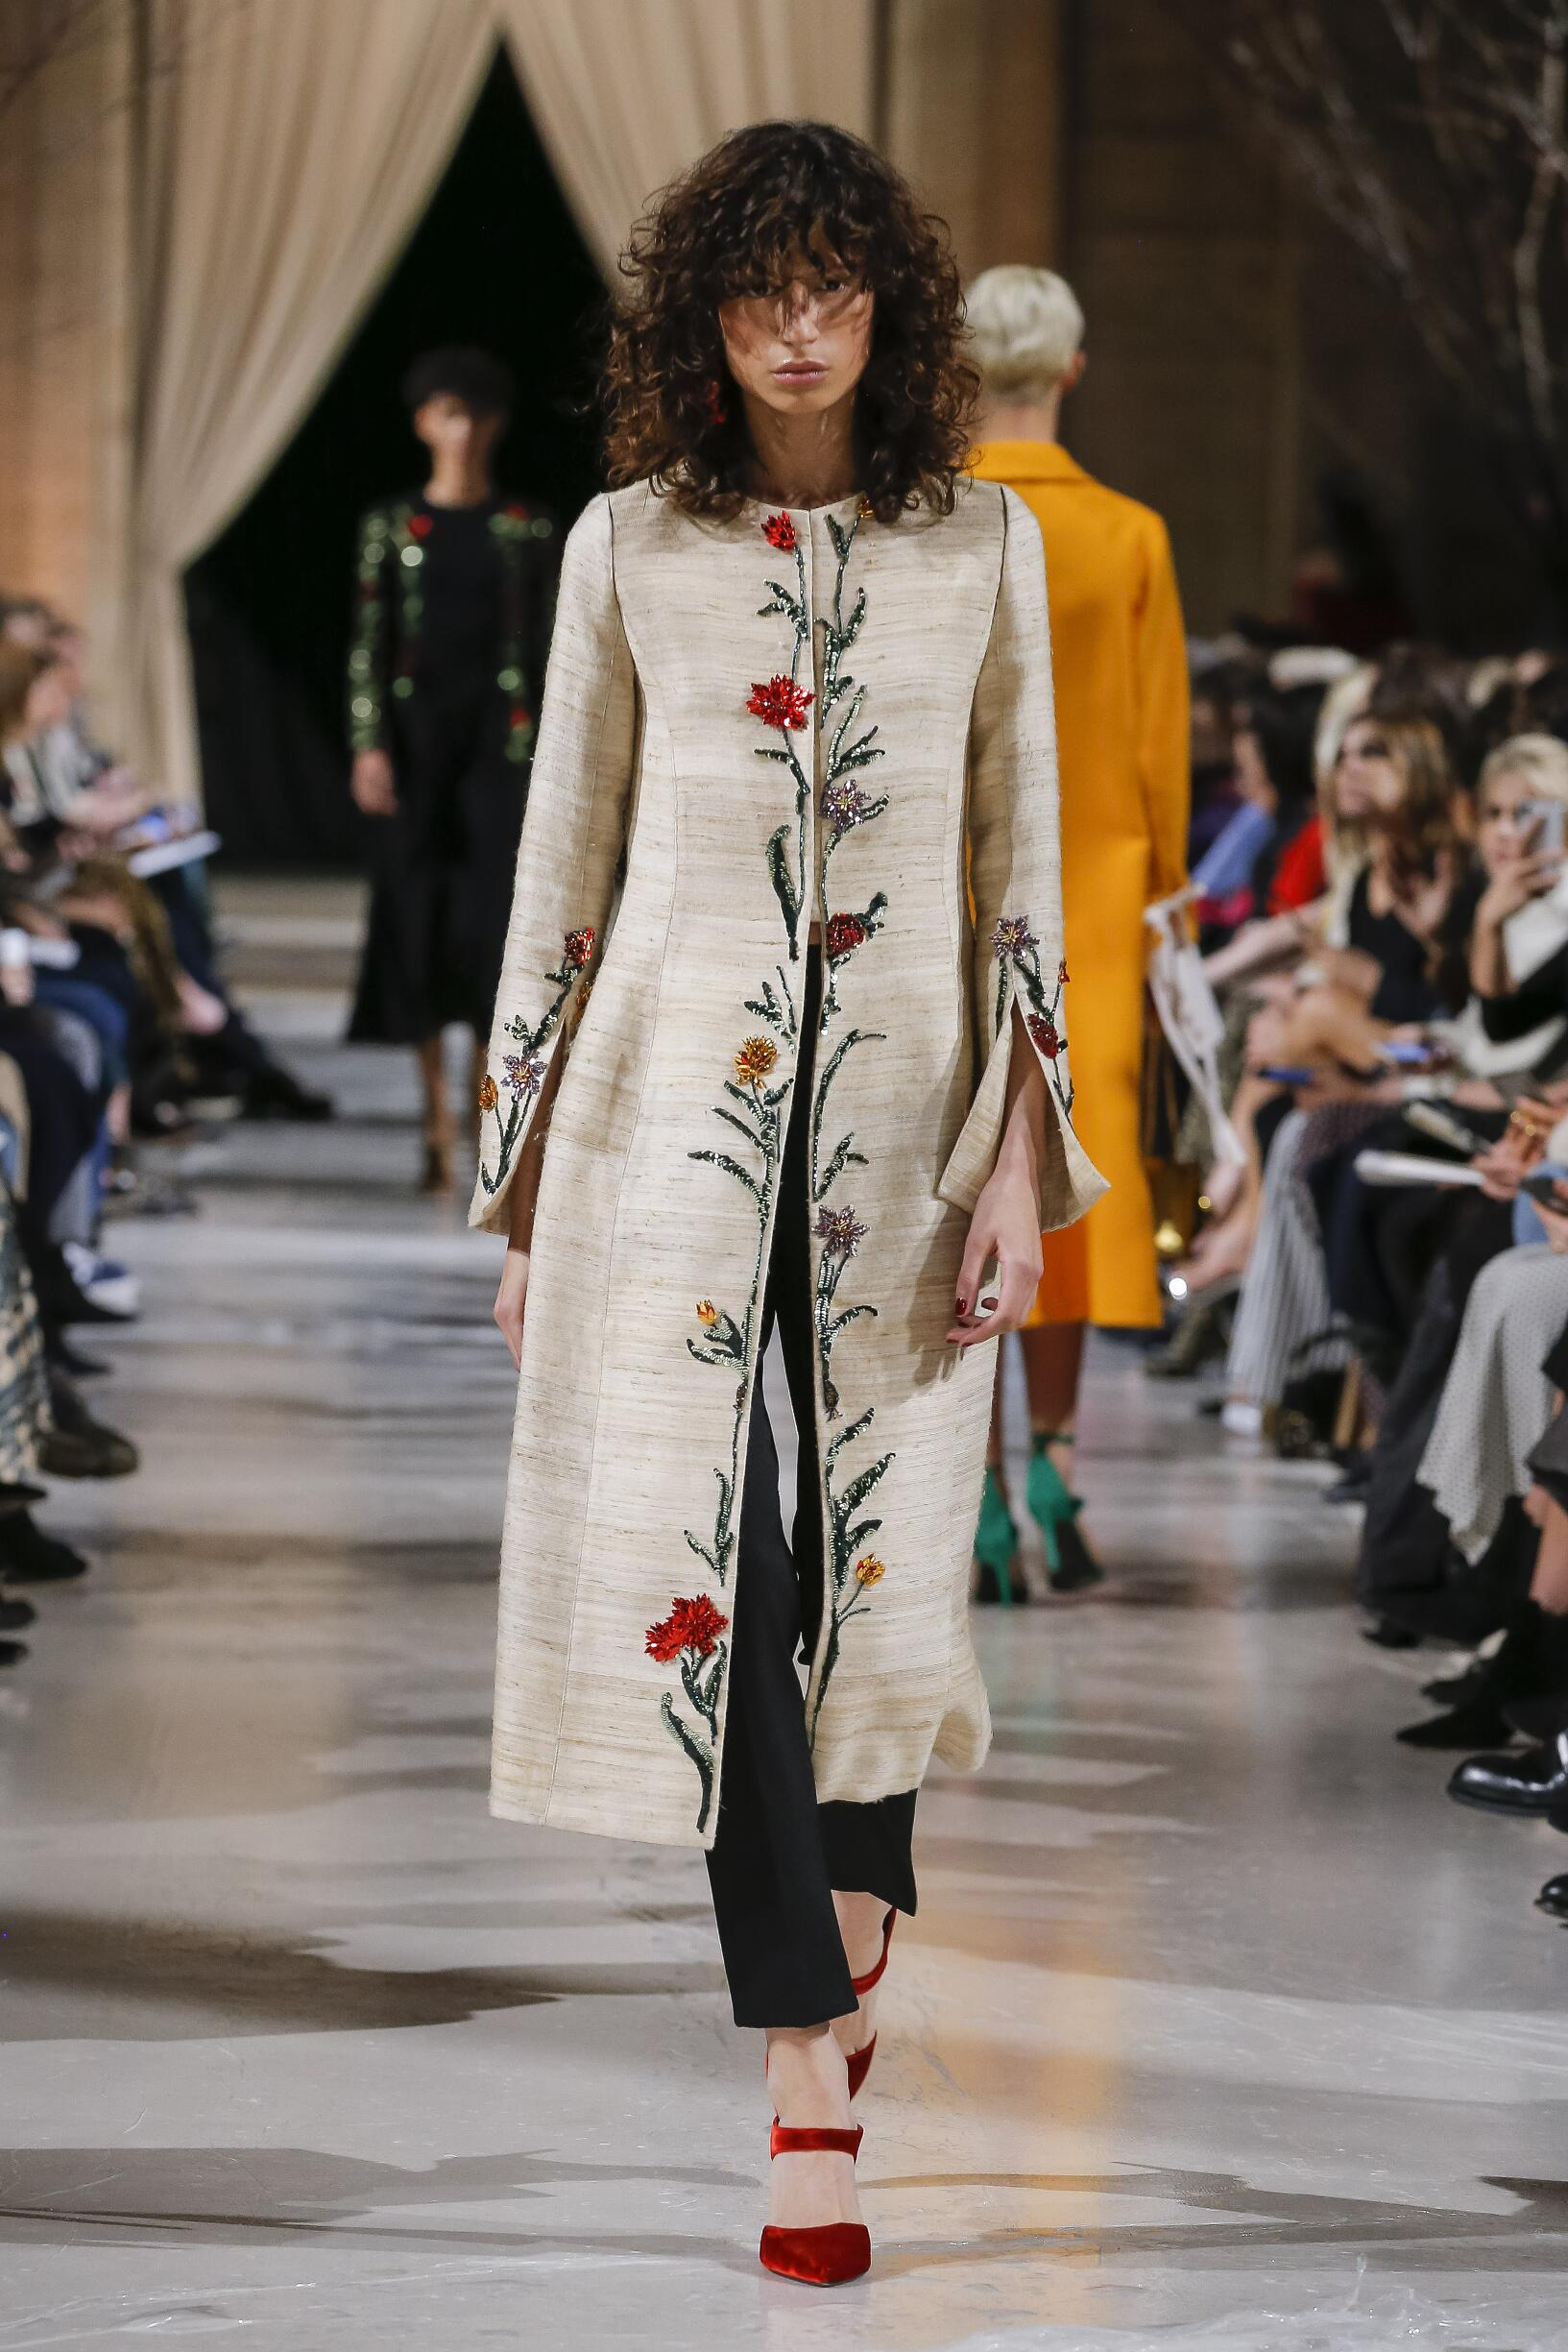 Oscar de la Renta Winter 2018 Woman Catwalk